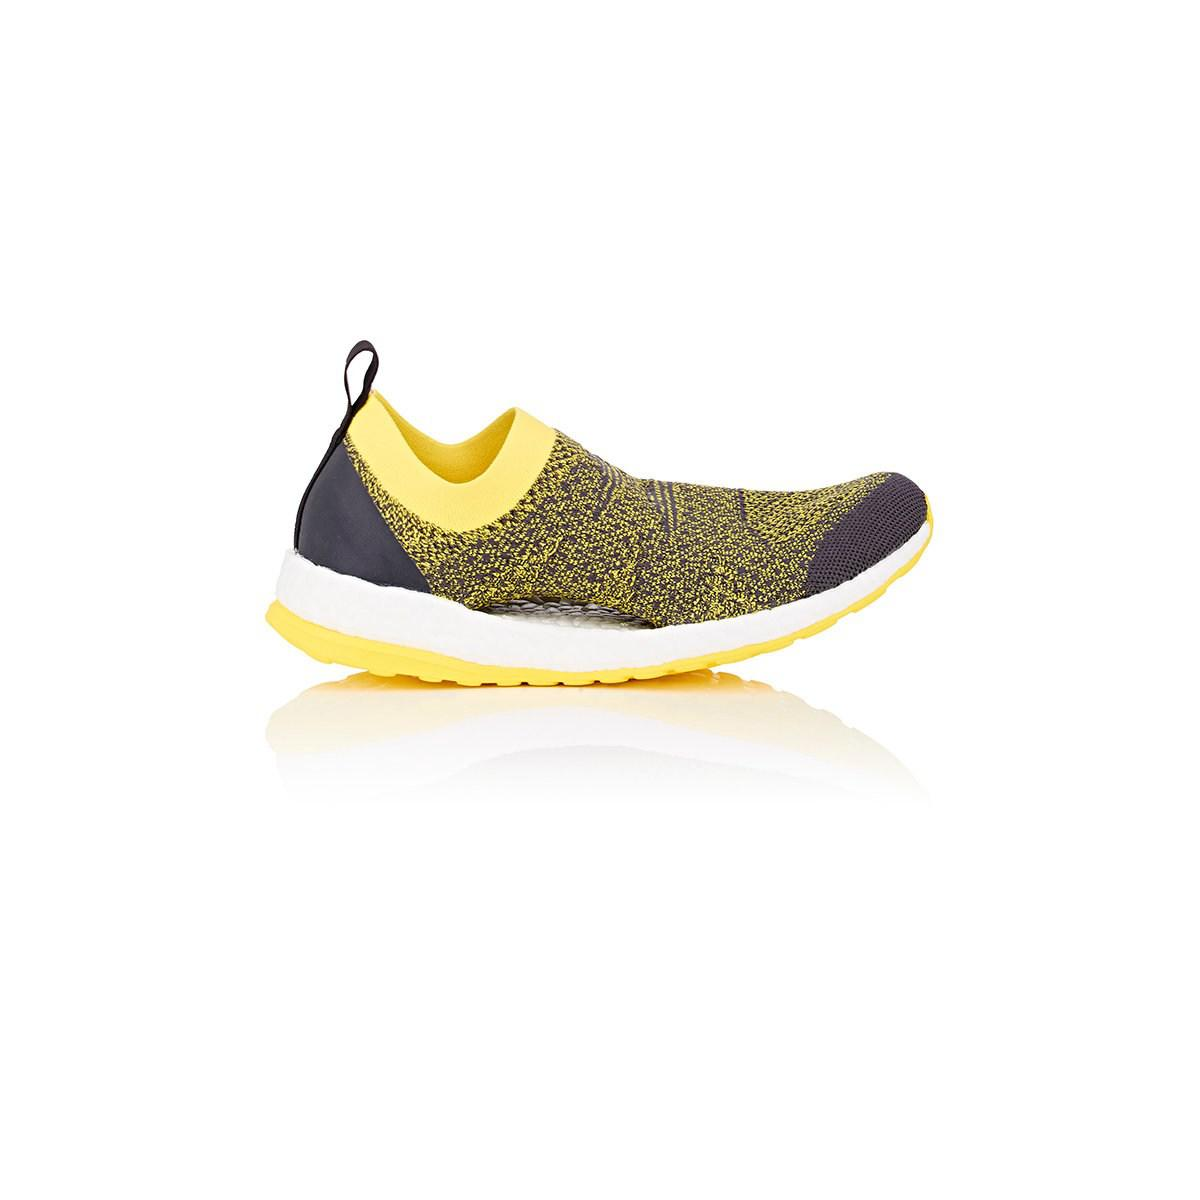 37b2377f6f617 adidas By Stella McCartney Pure Boost X Slip-on Sneakers in Yellow ...